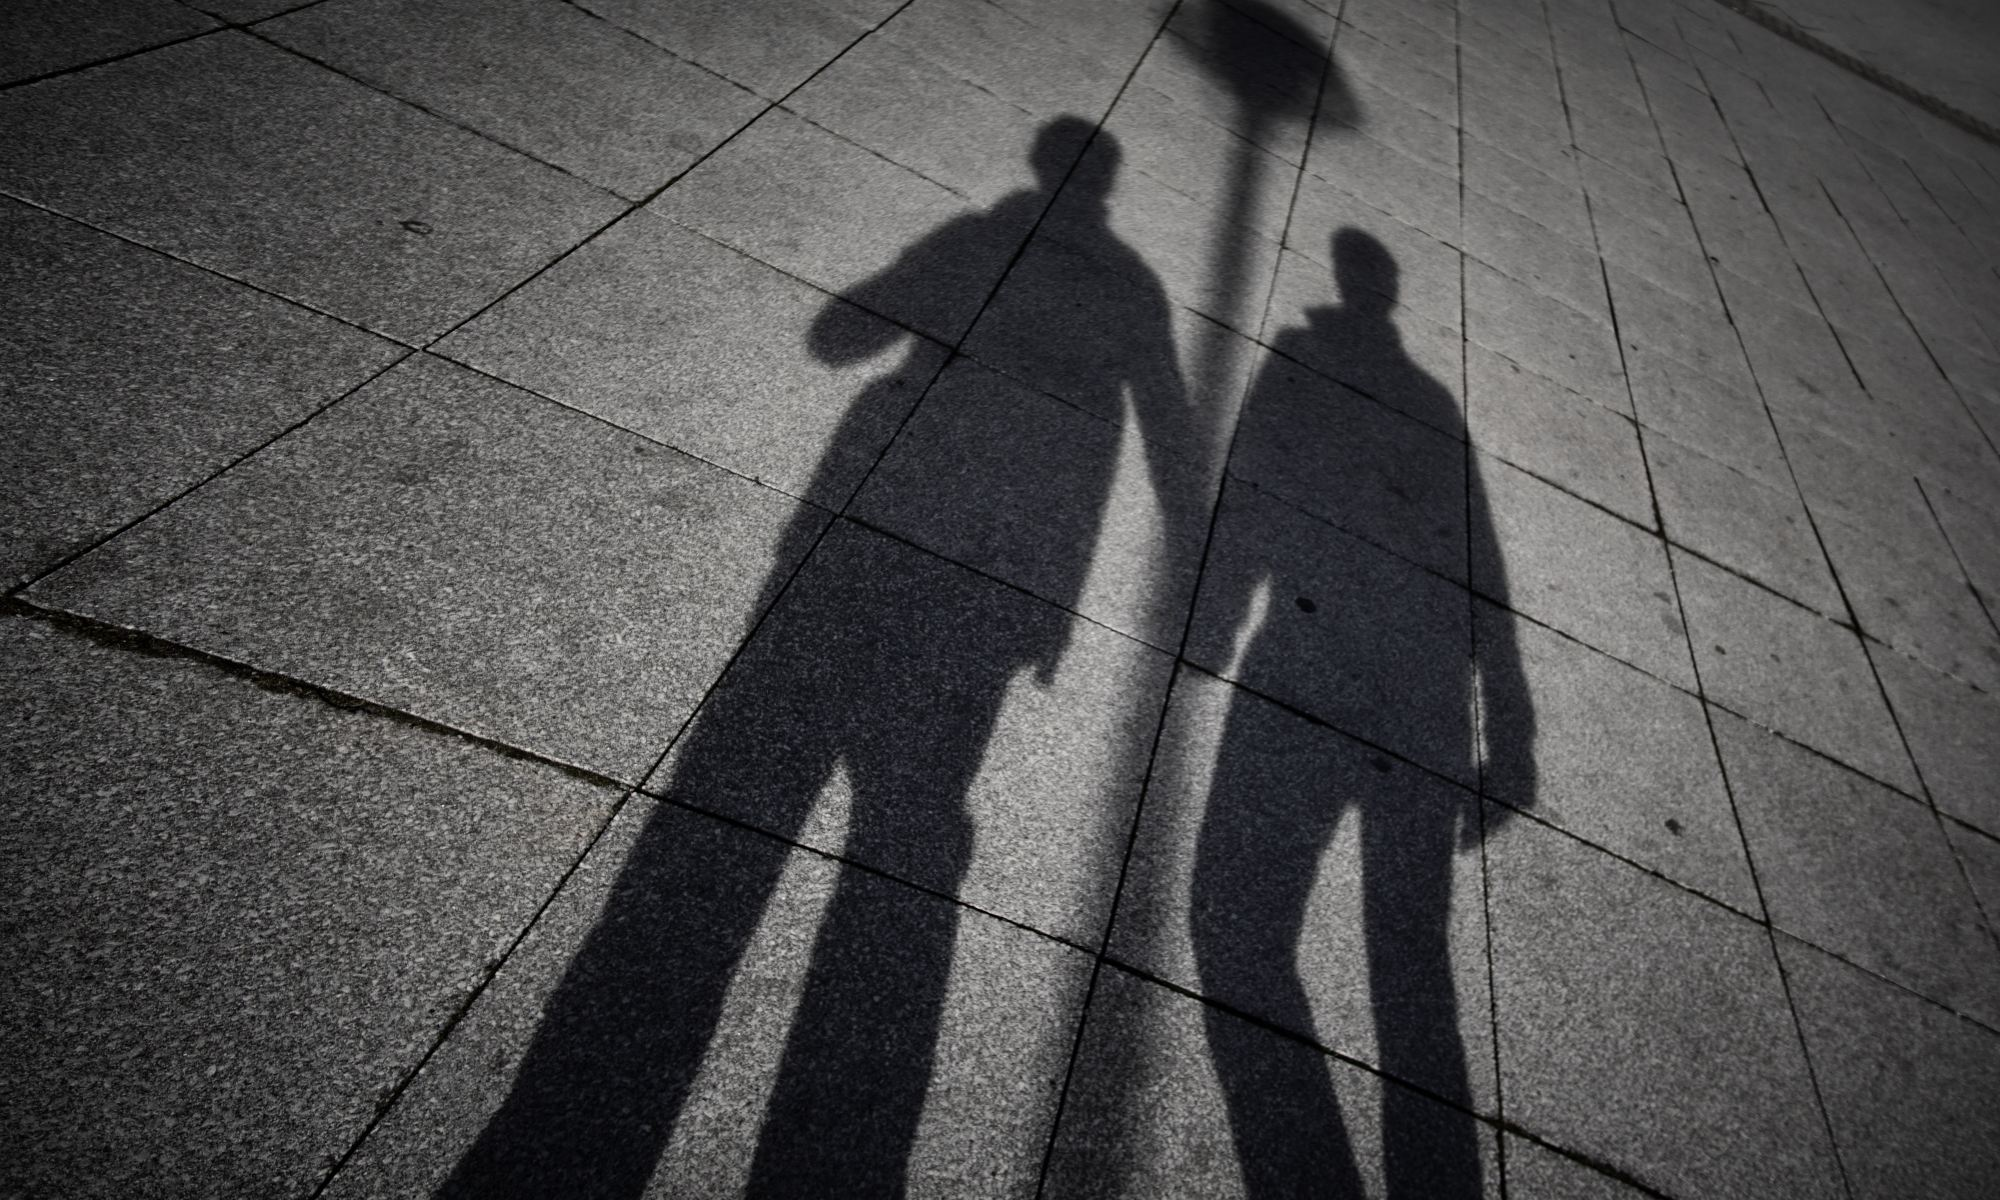 The shadow of two homosexual men holding hands